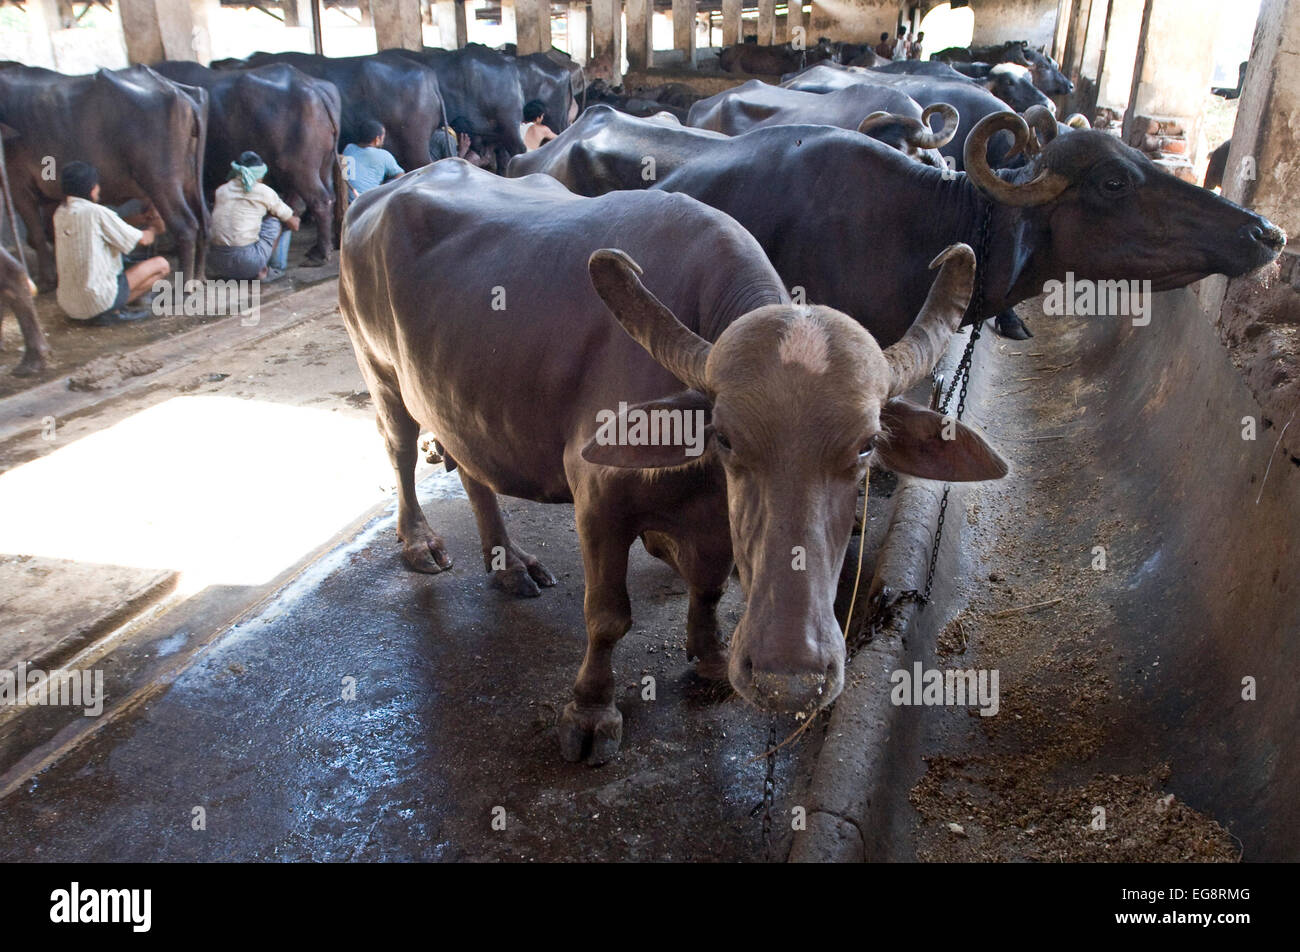 Aarey Milk Colony is a conglomeration of private buffalo dairy farms situated in Goregaon a suburb of Mumbai.Stock Photo